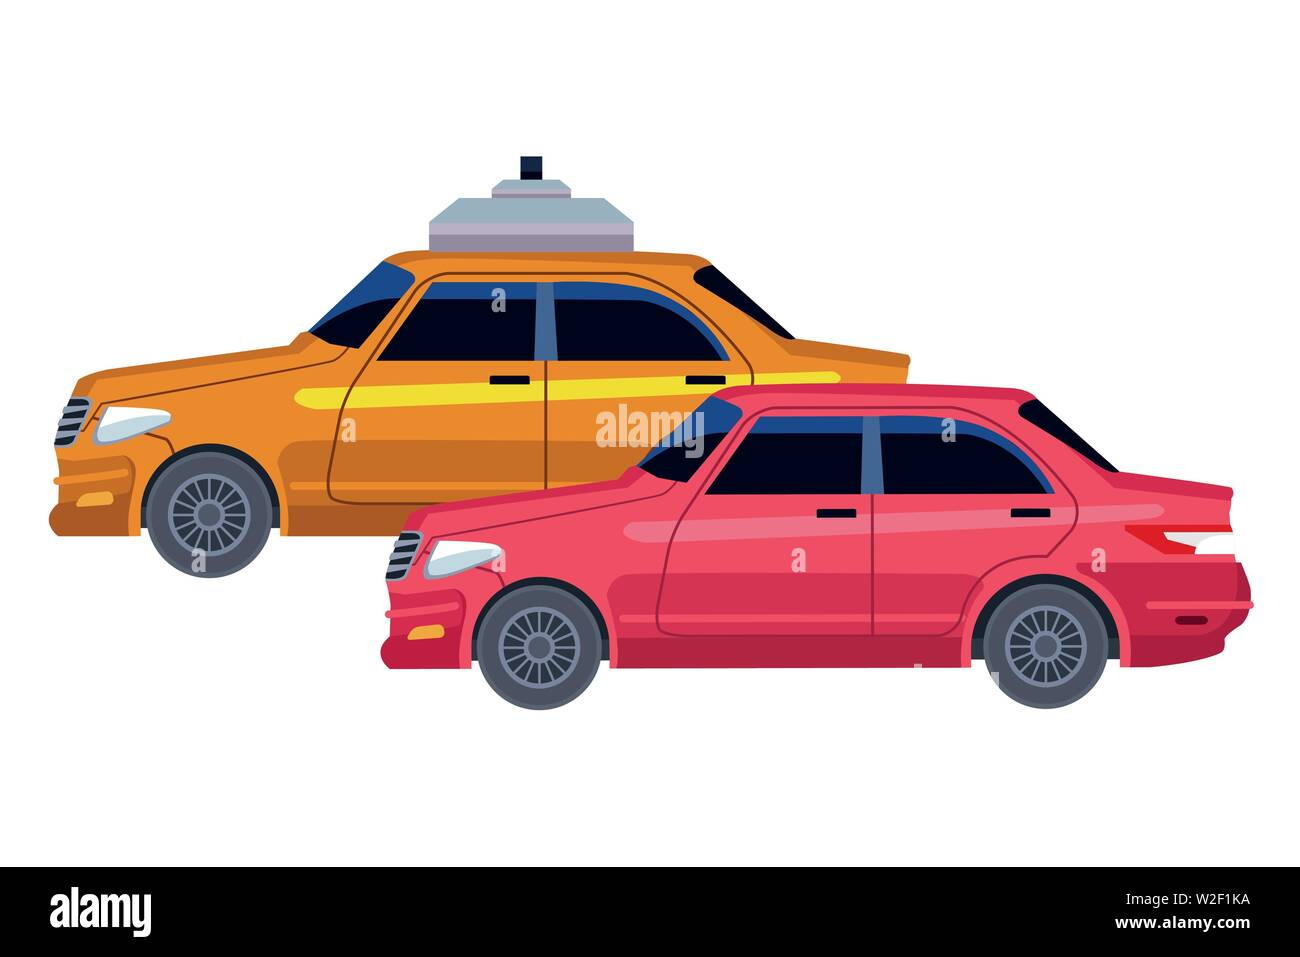 taxicab and vehicle icon cartoon - Stock Image